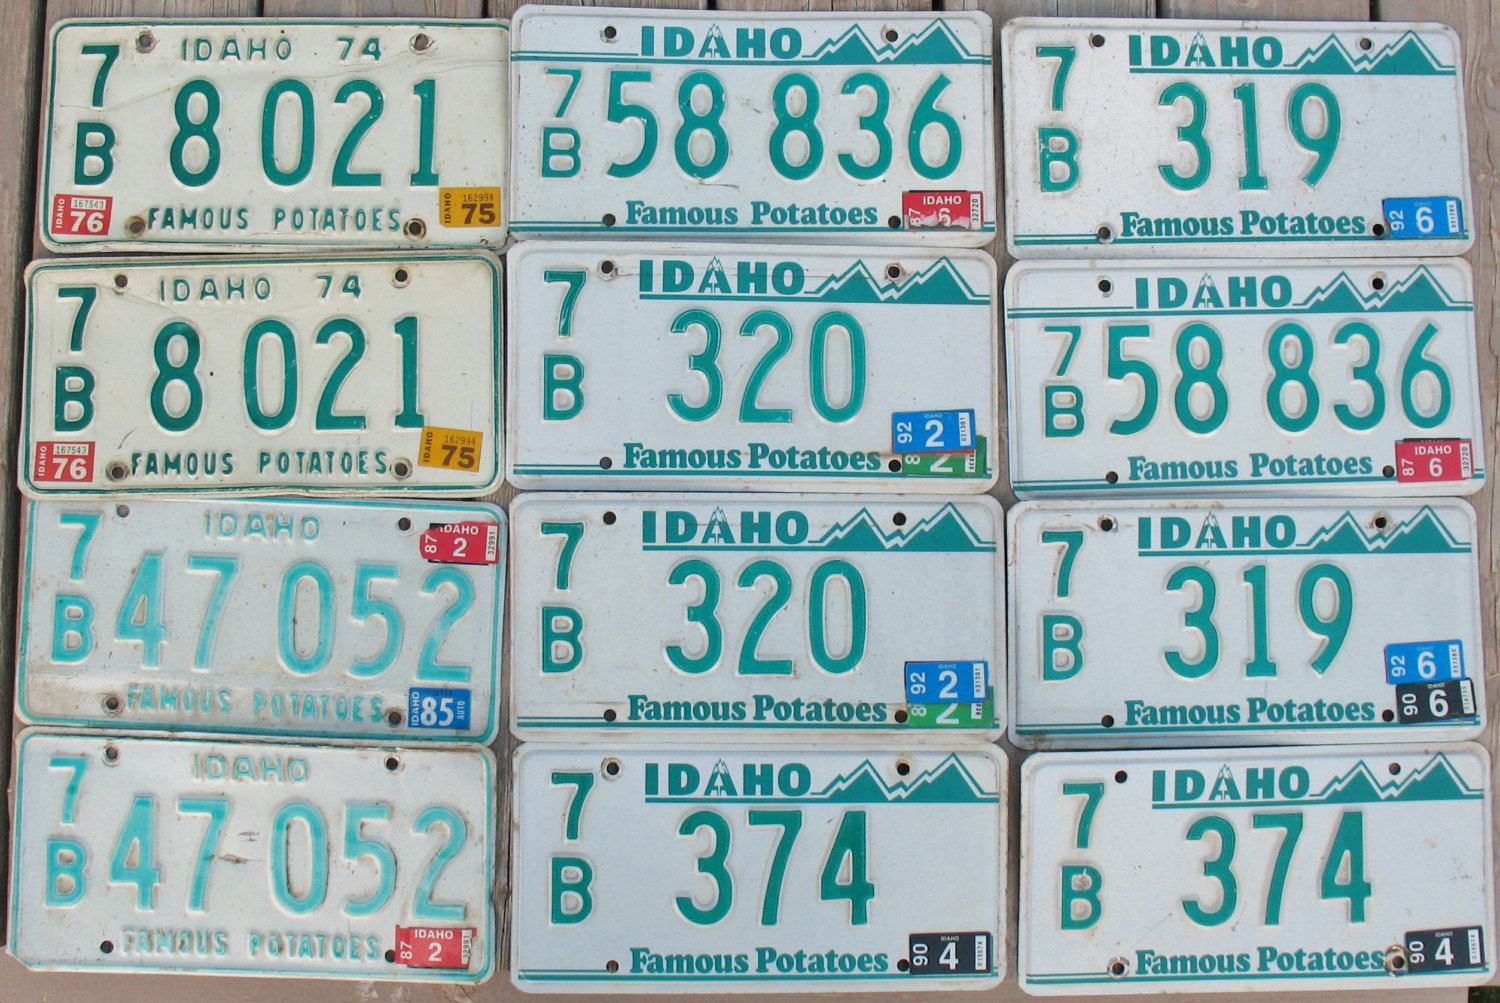 VTG Lot 12 Embossed Metal License Plates IDAHO 7B All Sets Green Mountains Car Vehicle Automobile Transportation Craft Diy by eclecticka on Etsy